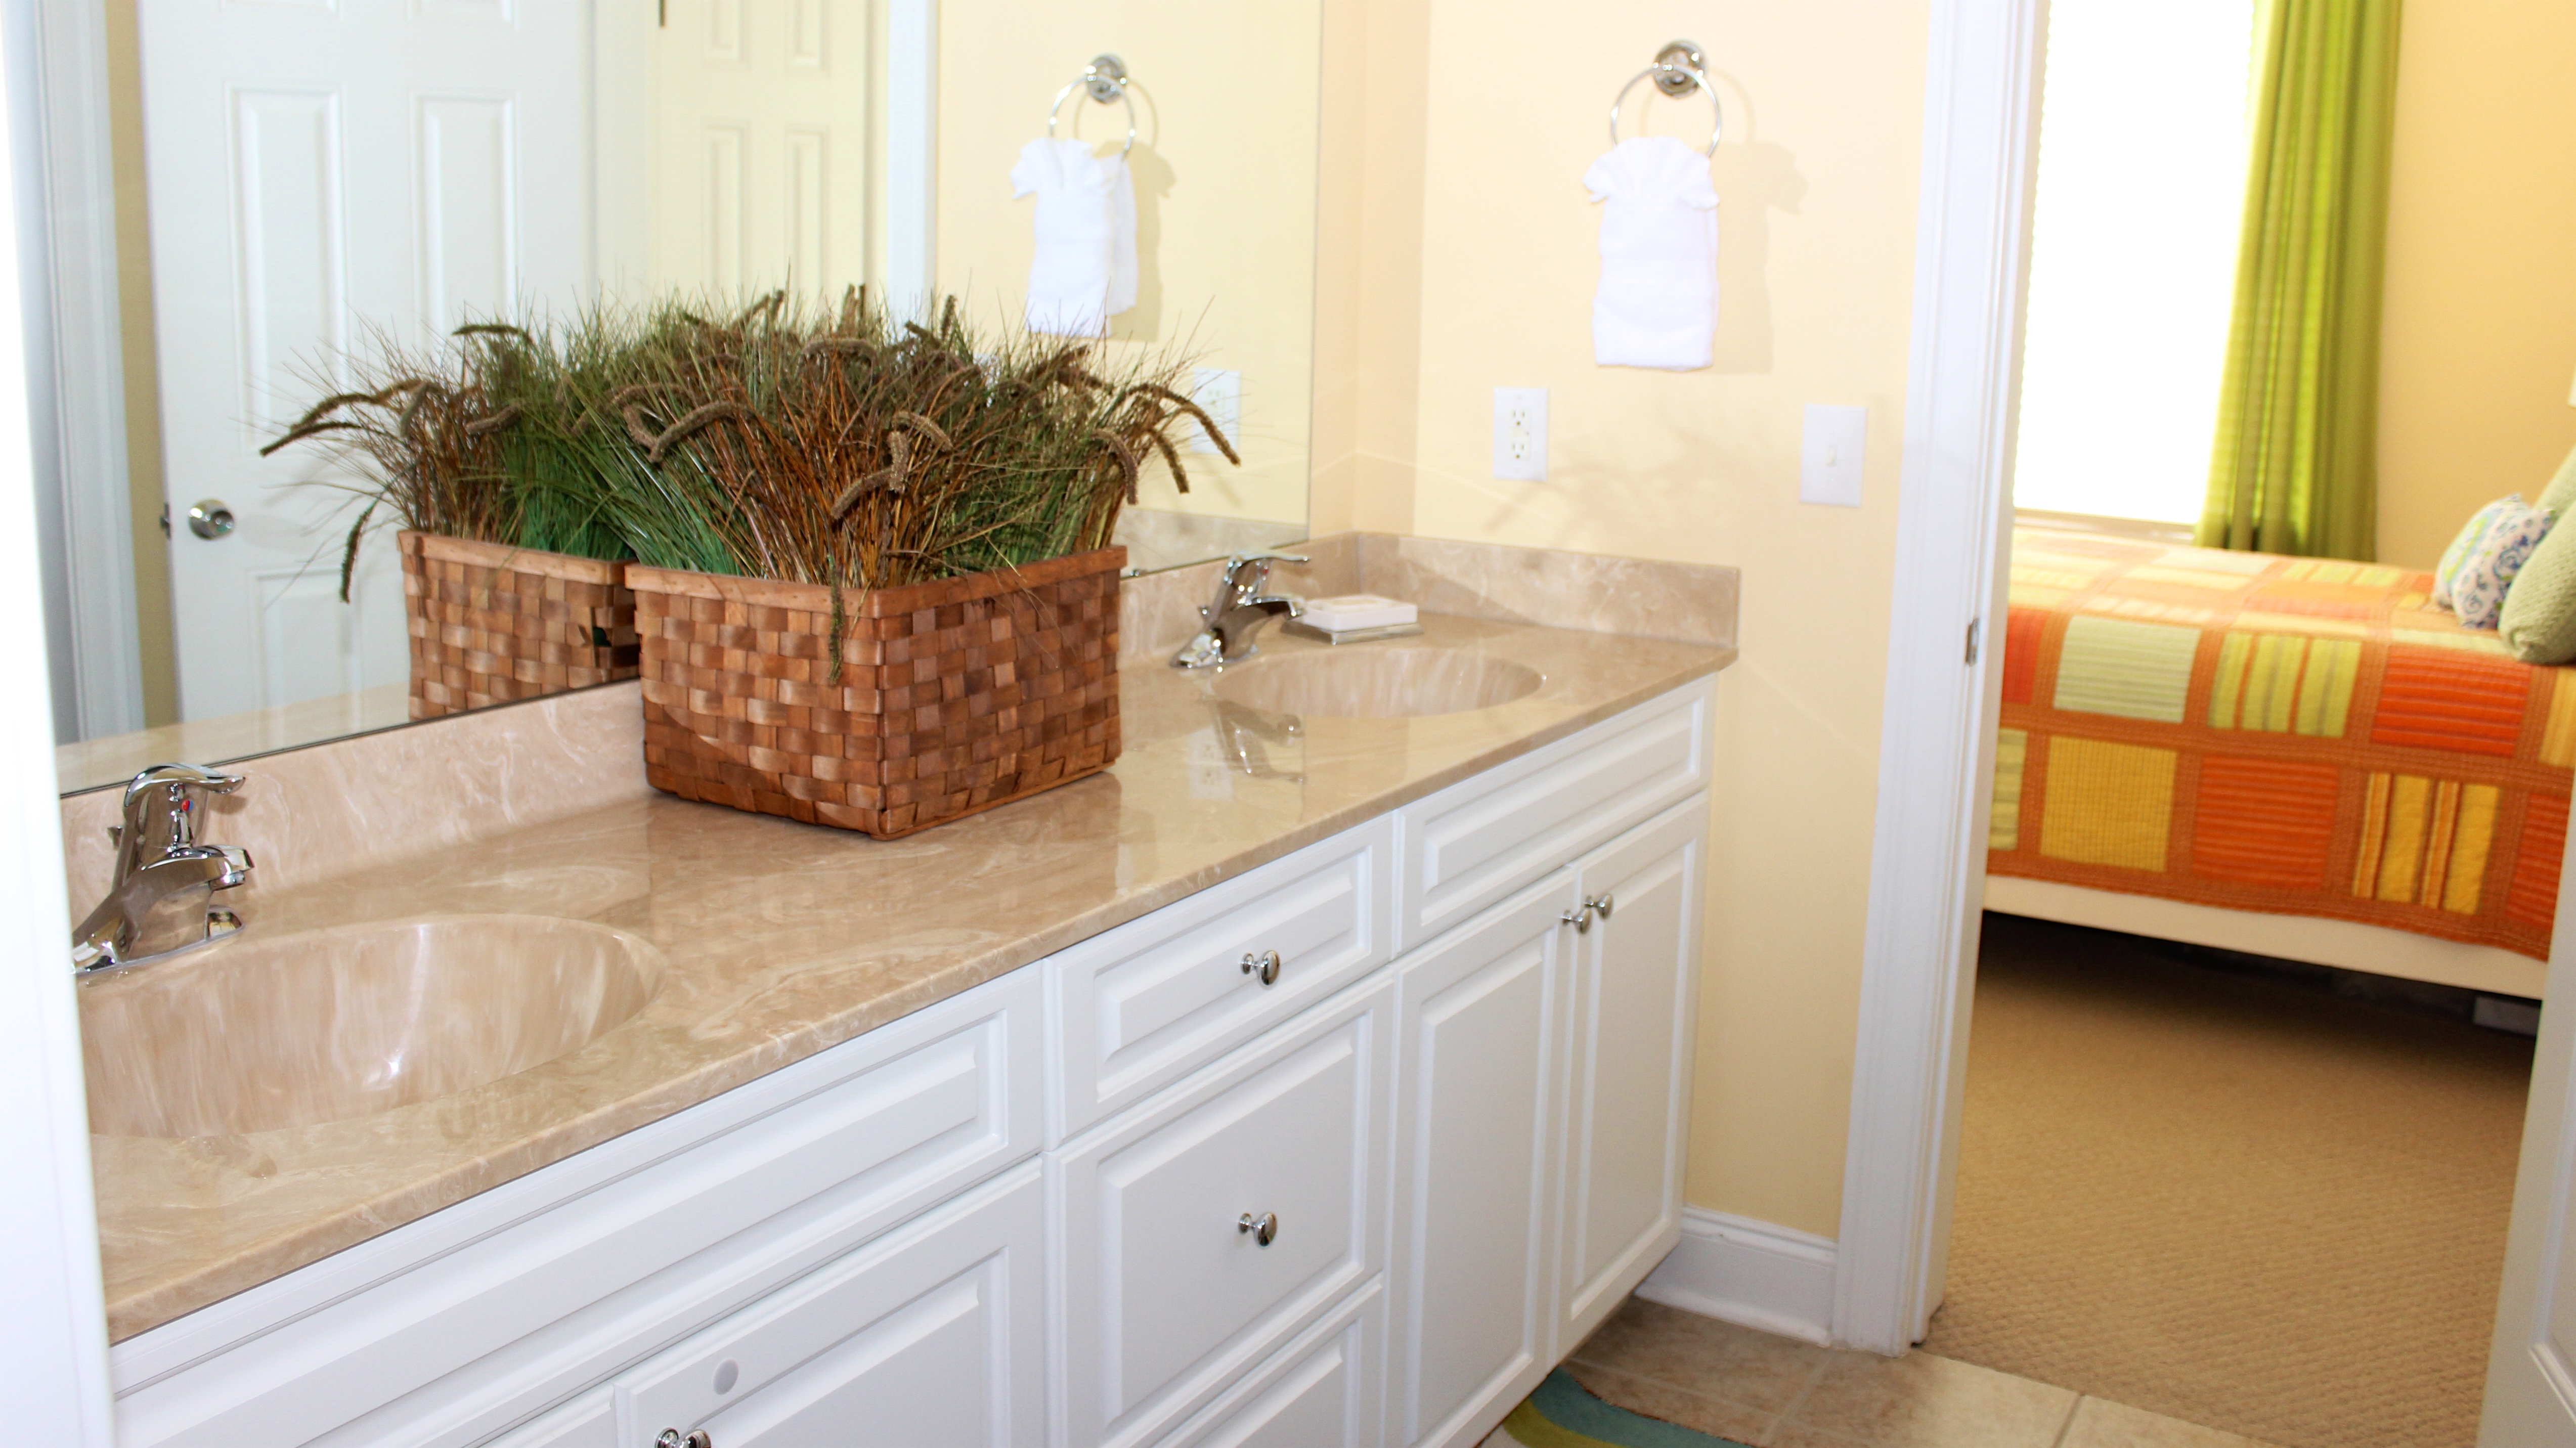 A Jack n Jill bathroom connects the two bedrooms. It has a double sink vanity.